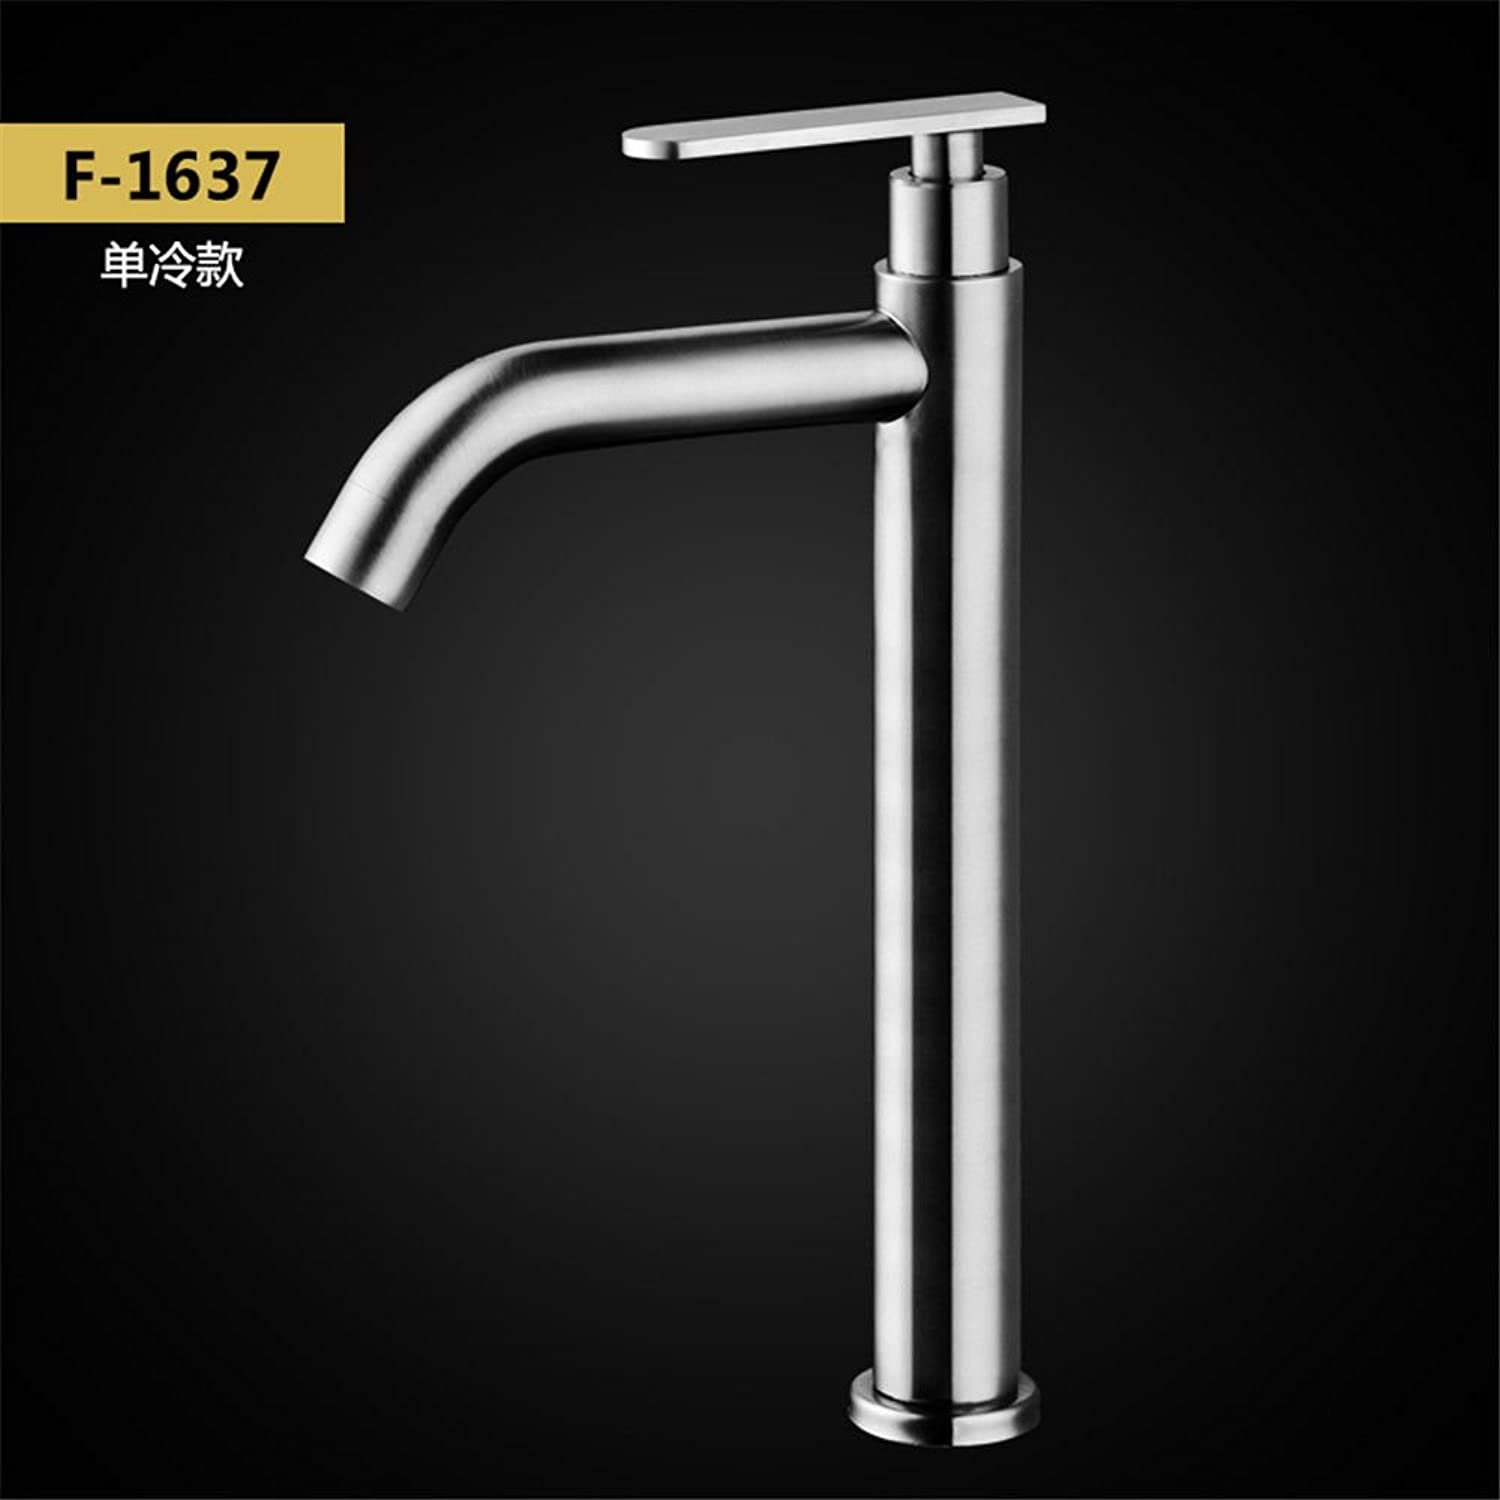 Hlluya Professional Sink Mixer Tap Kitchen Faucet Stainless steel cold water faucet 304 stainless steel hot and cold water faucet basin Faucet